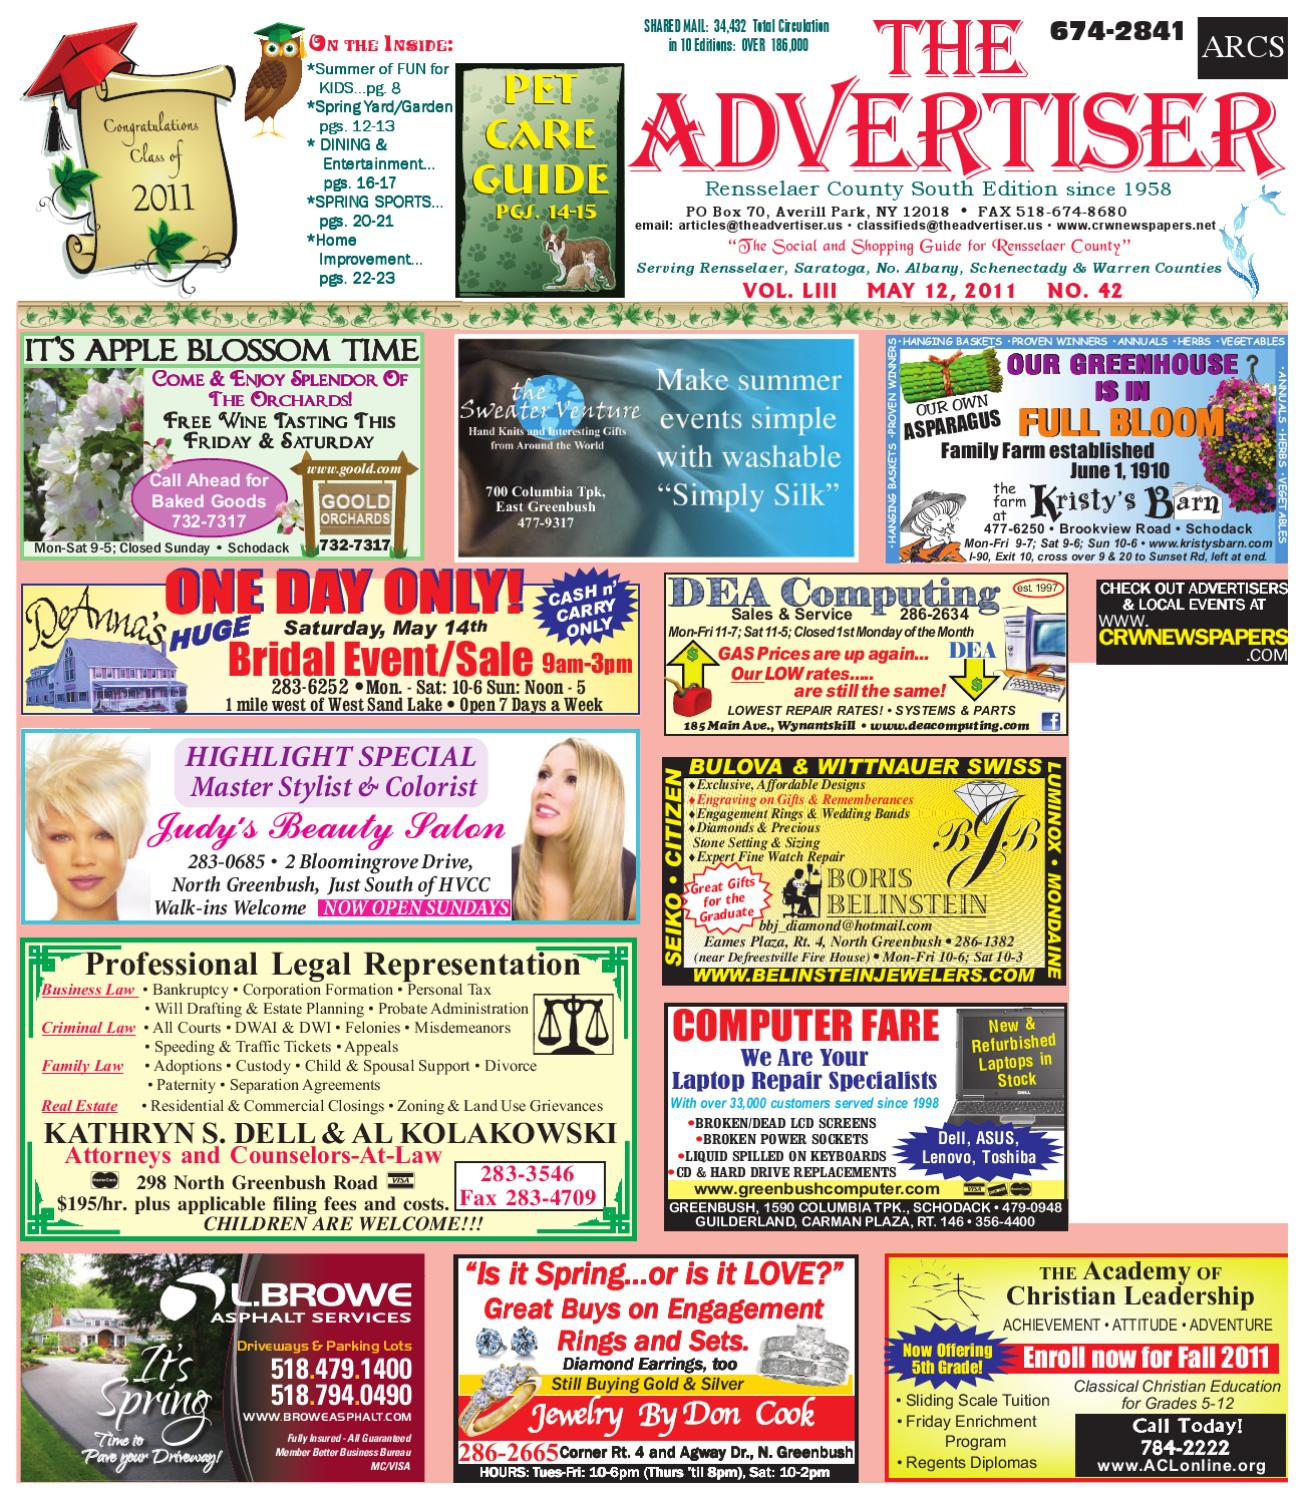 f6a46c3a4872 Advertiser South 051211 by Capital Region Weekly Newspapers - issuu